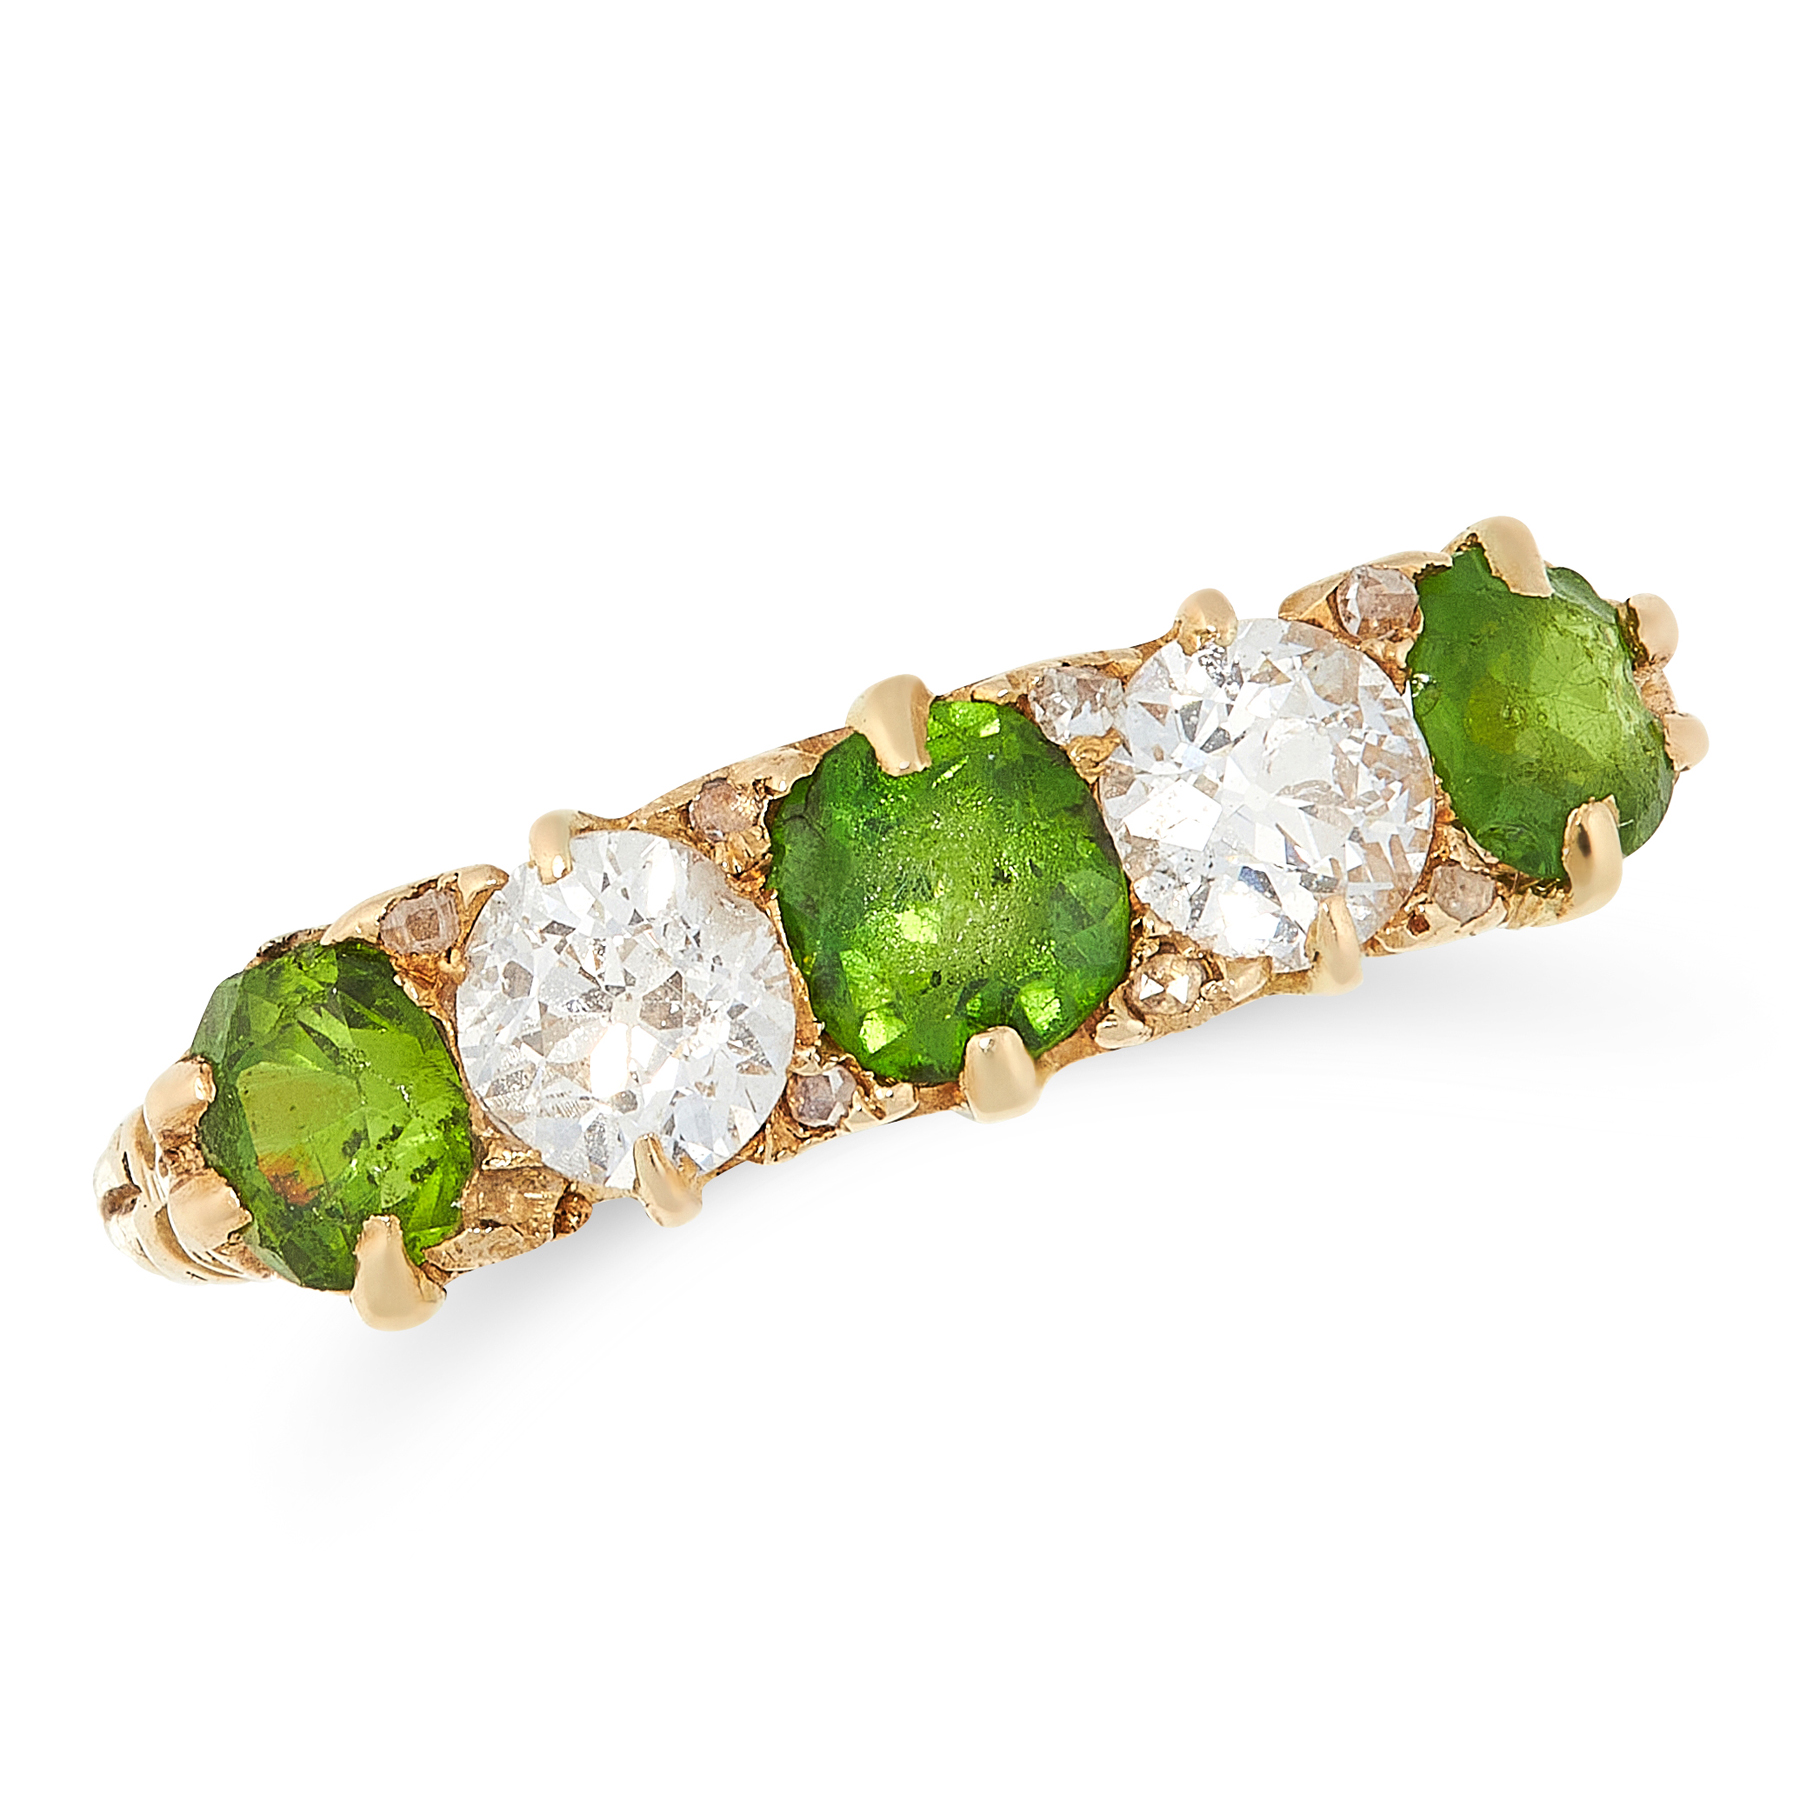 AN ANTIQUE DEMANTOID GARNET AND DIAMOND RING in high carat yellow gold, set with five alternating